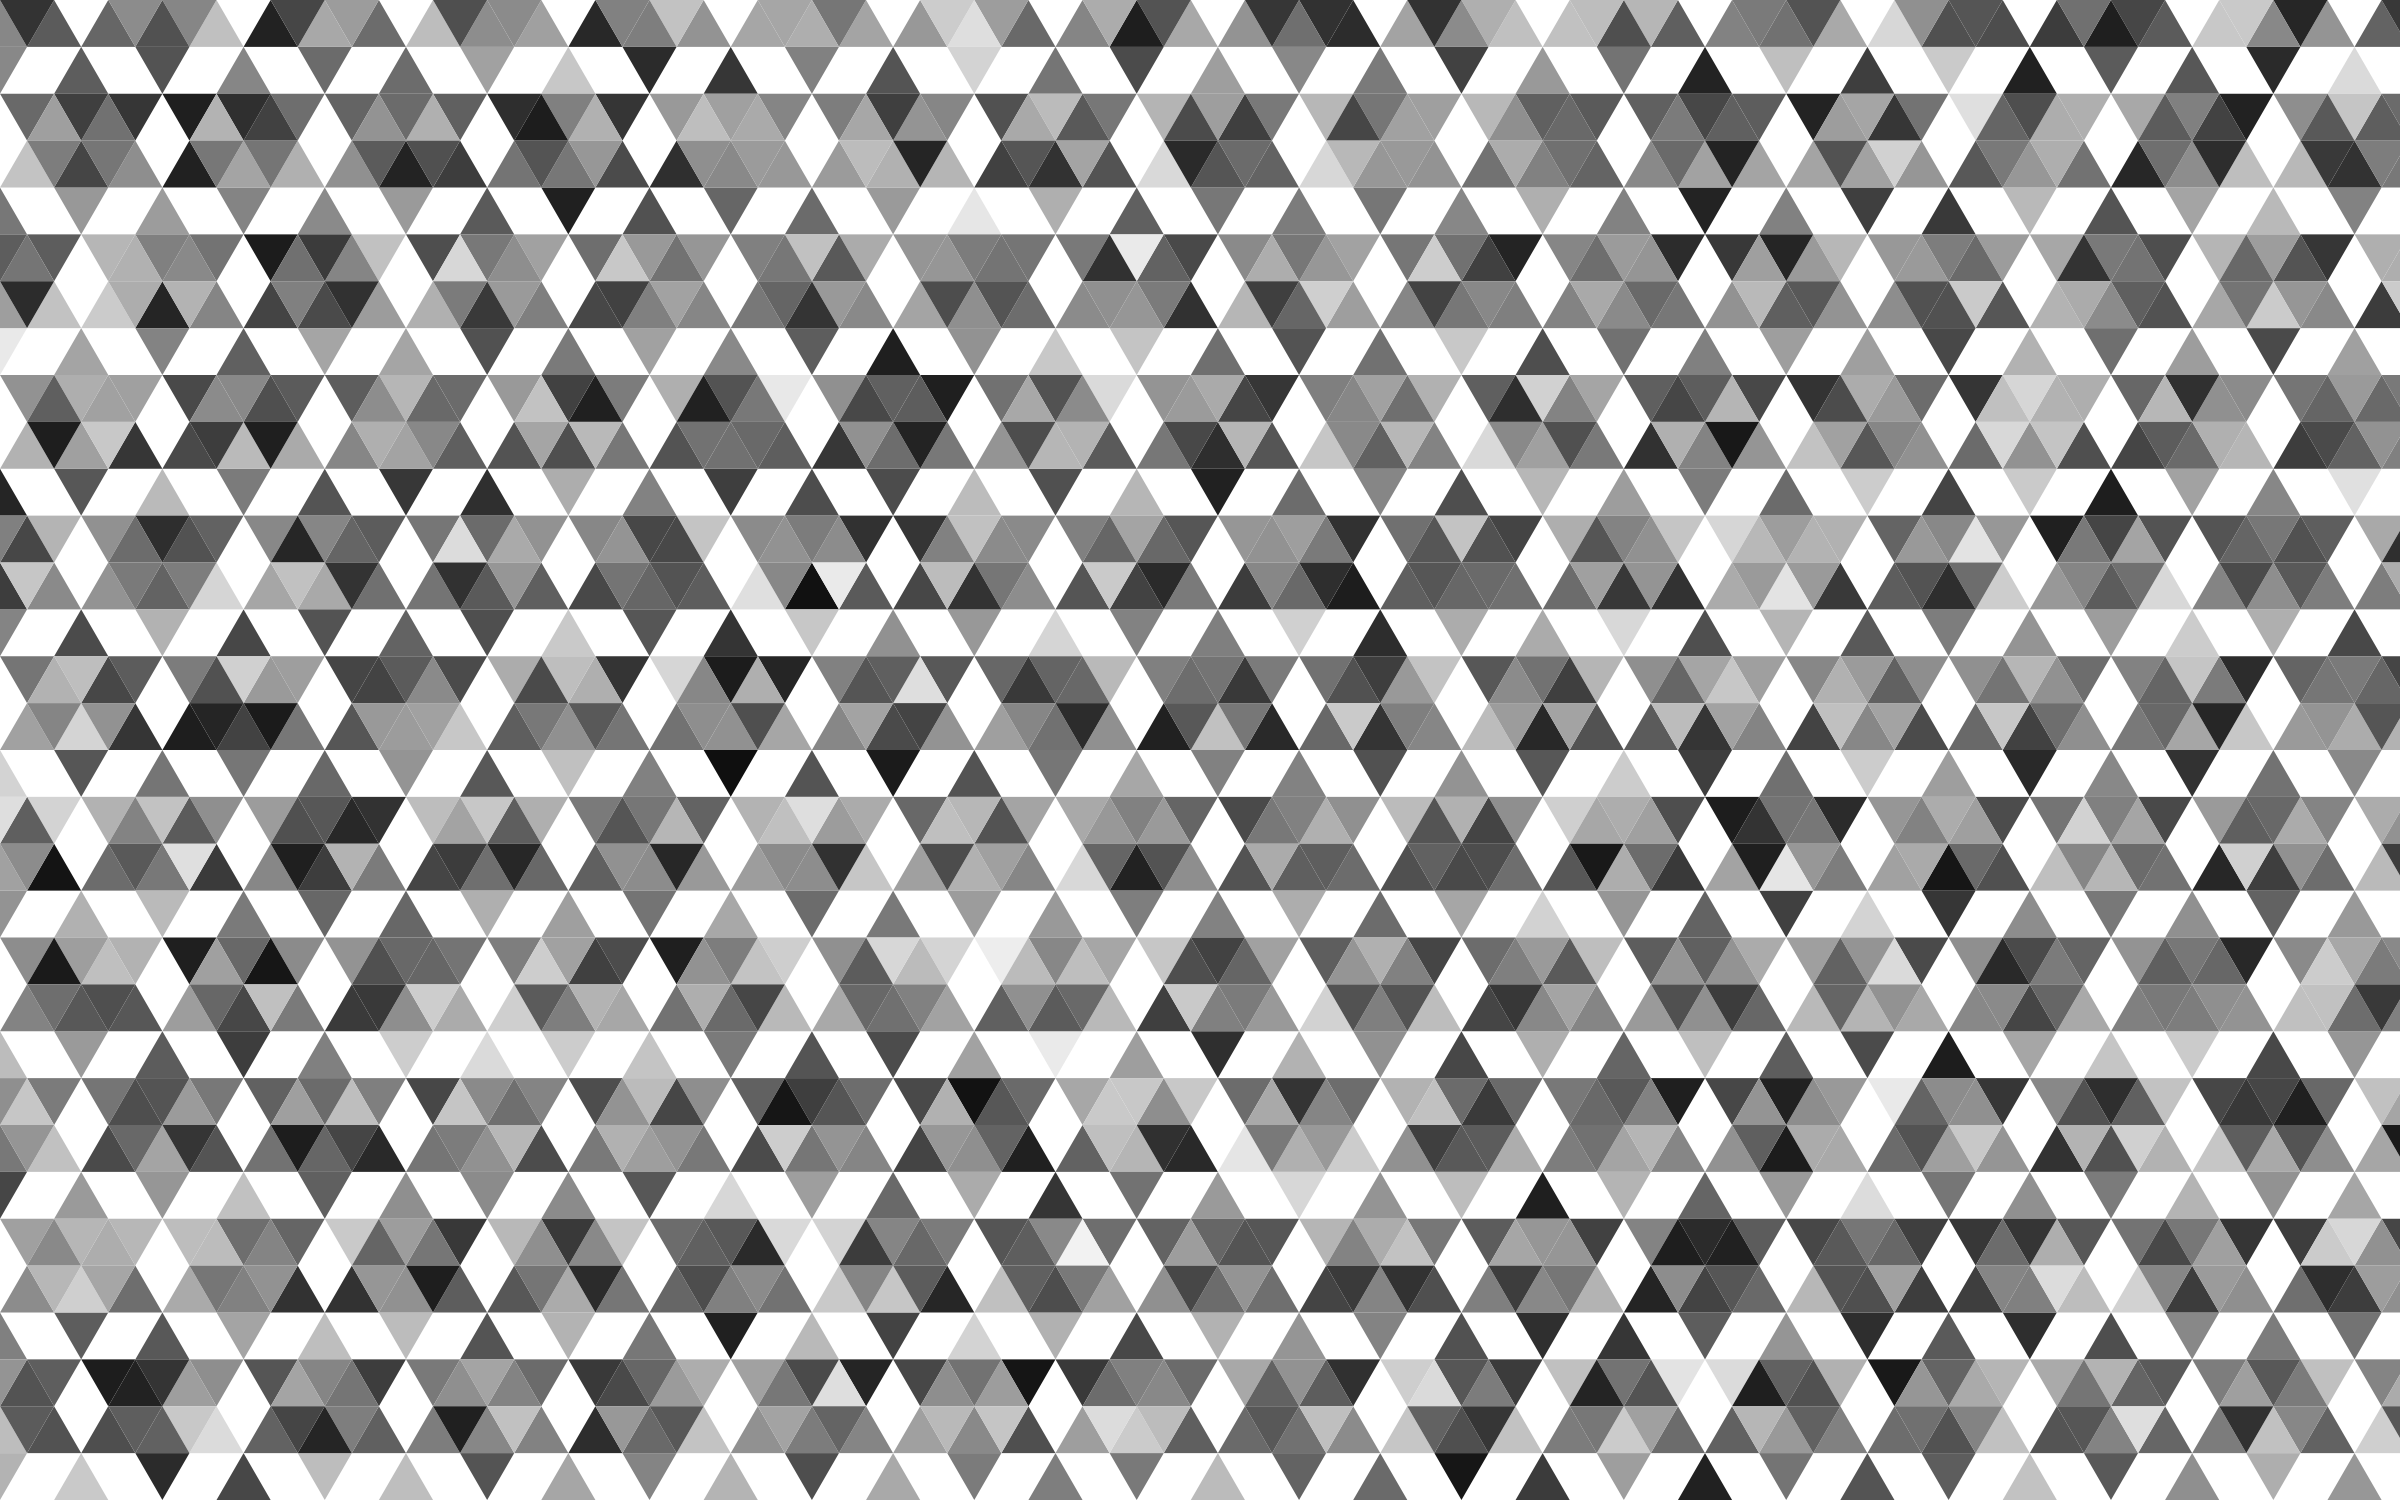 Png geometric pattern. Grayscale icons free and